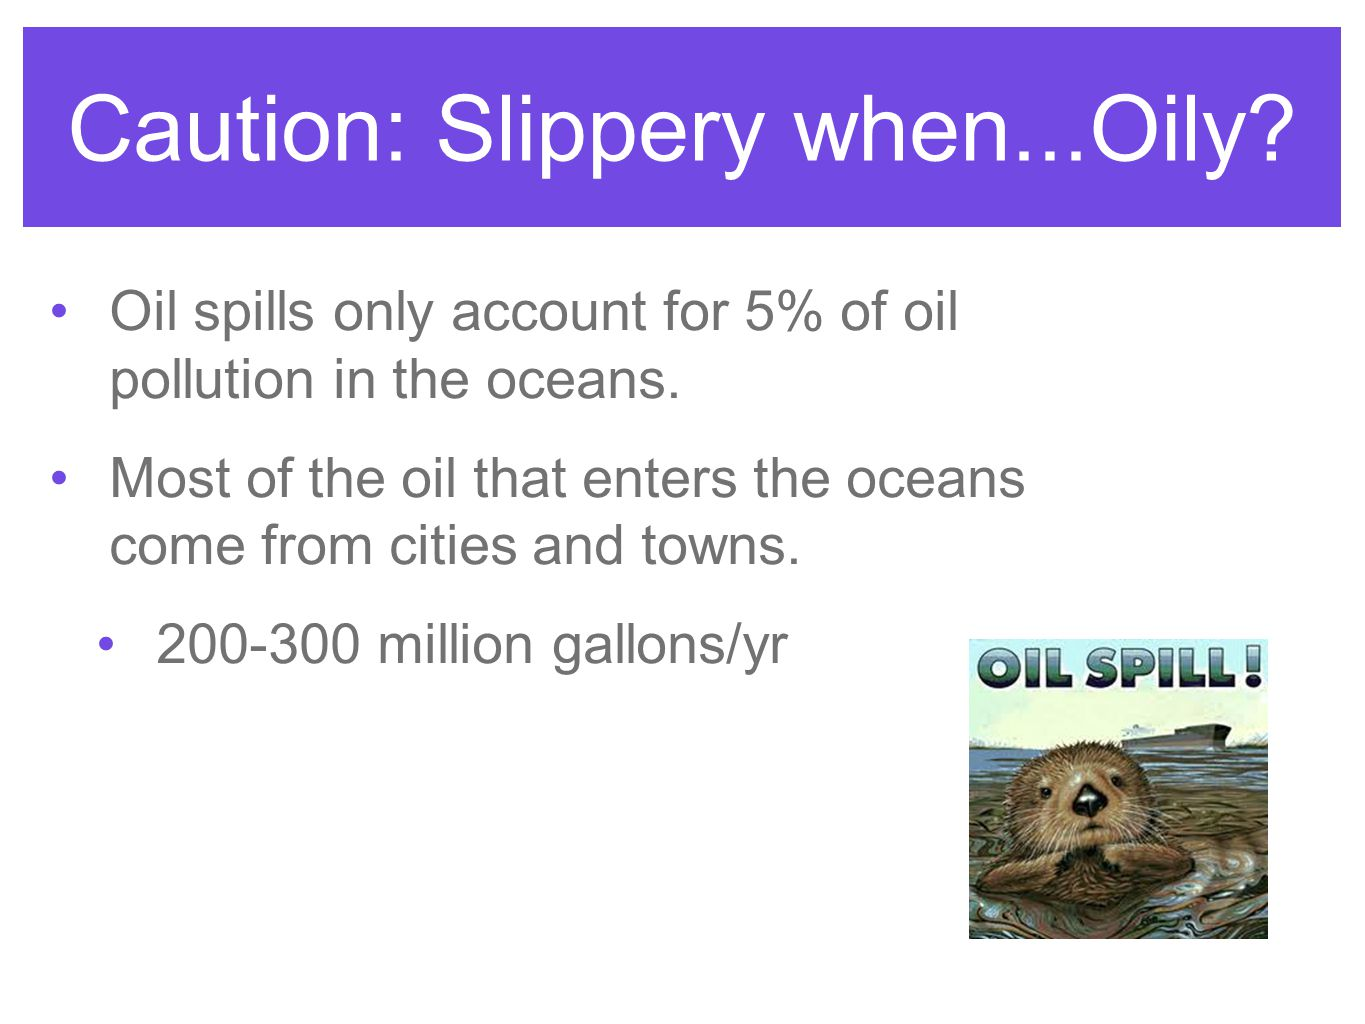 Caution: Slippery when...Oily